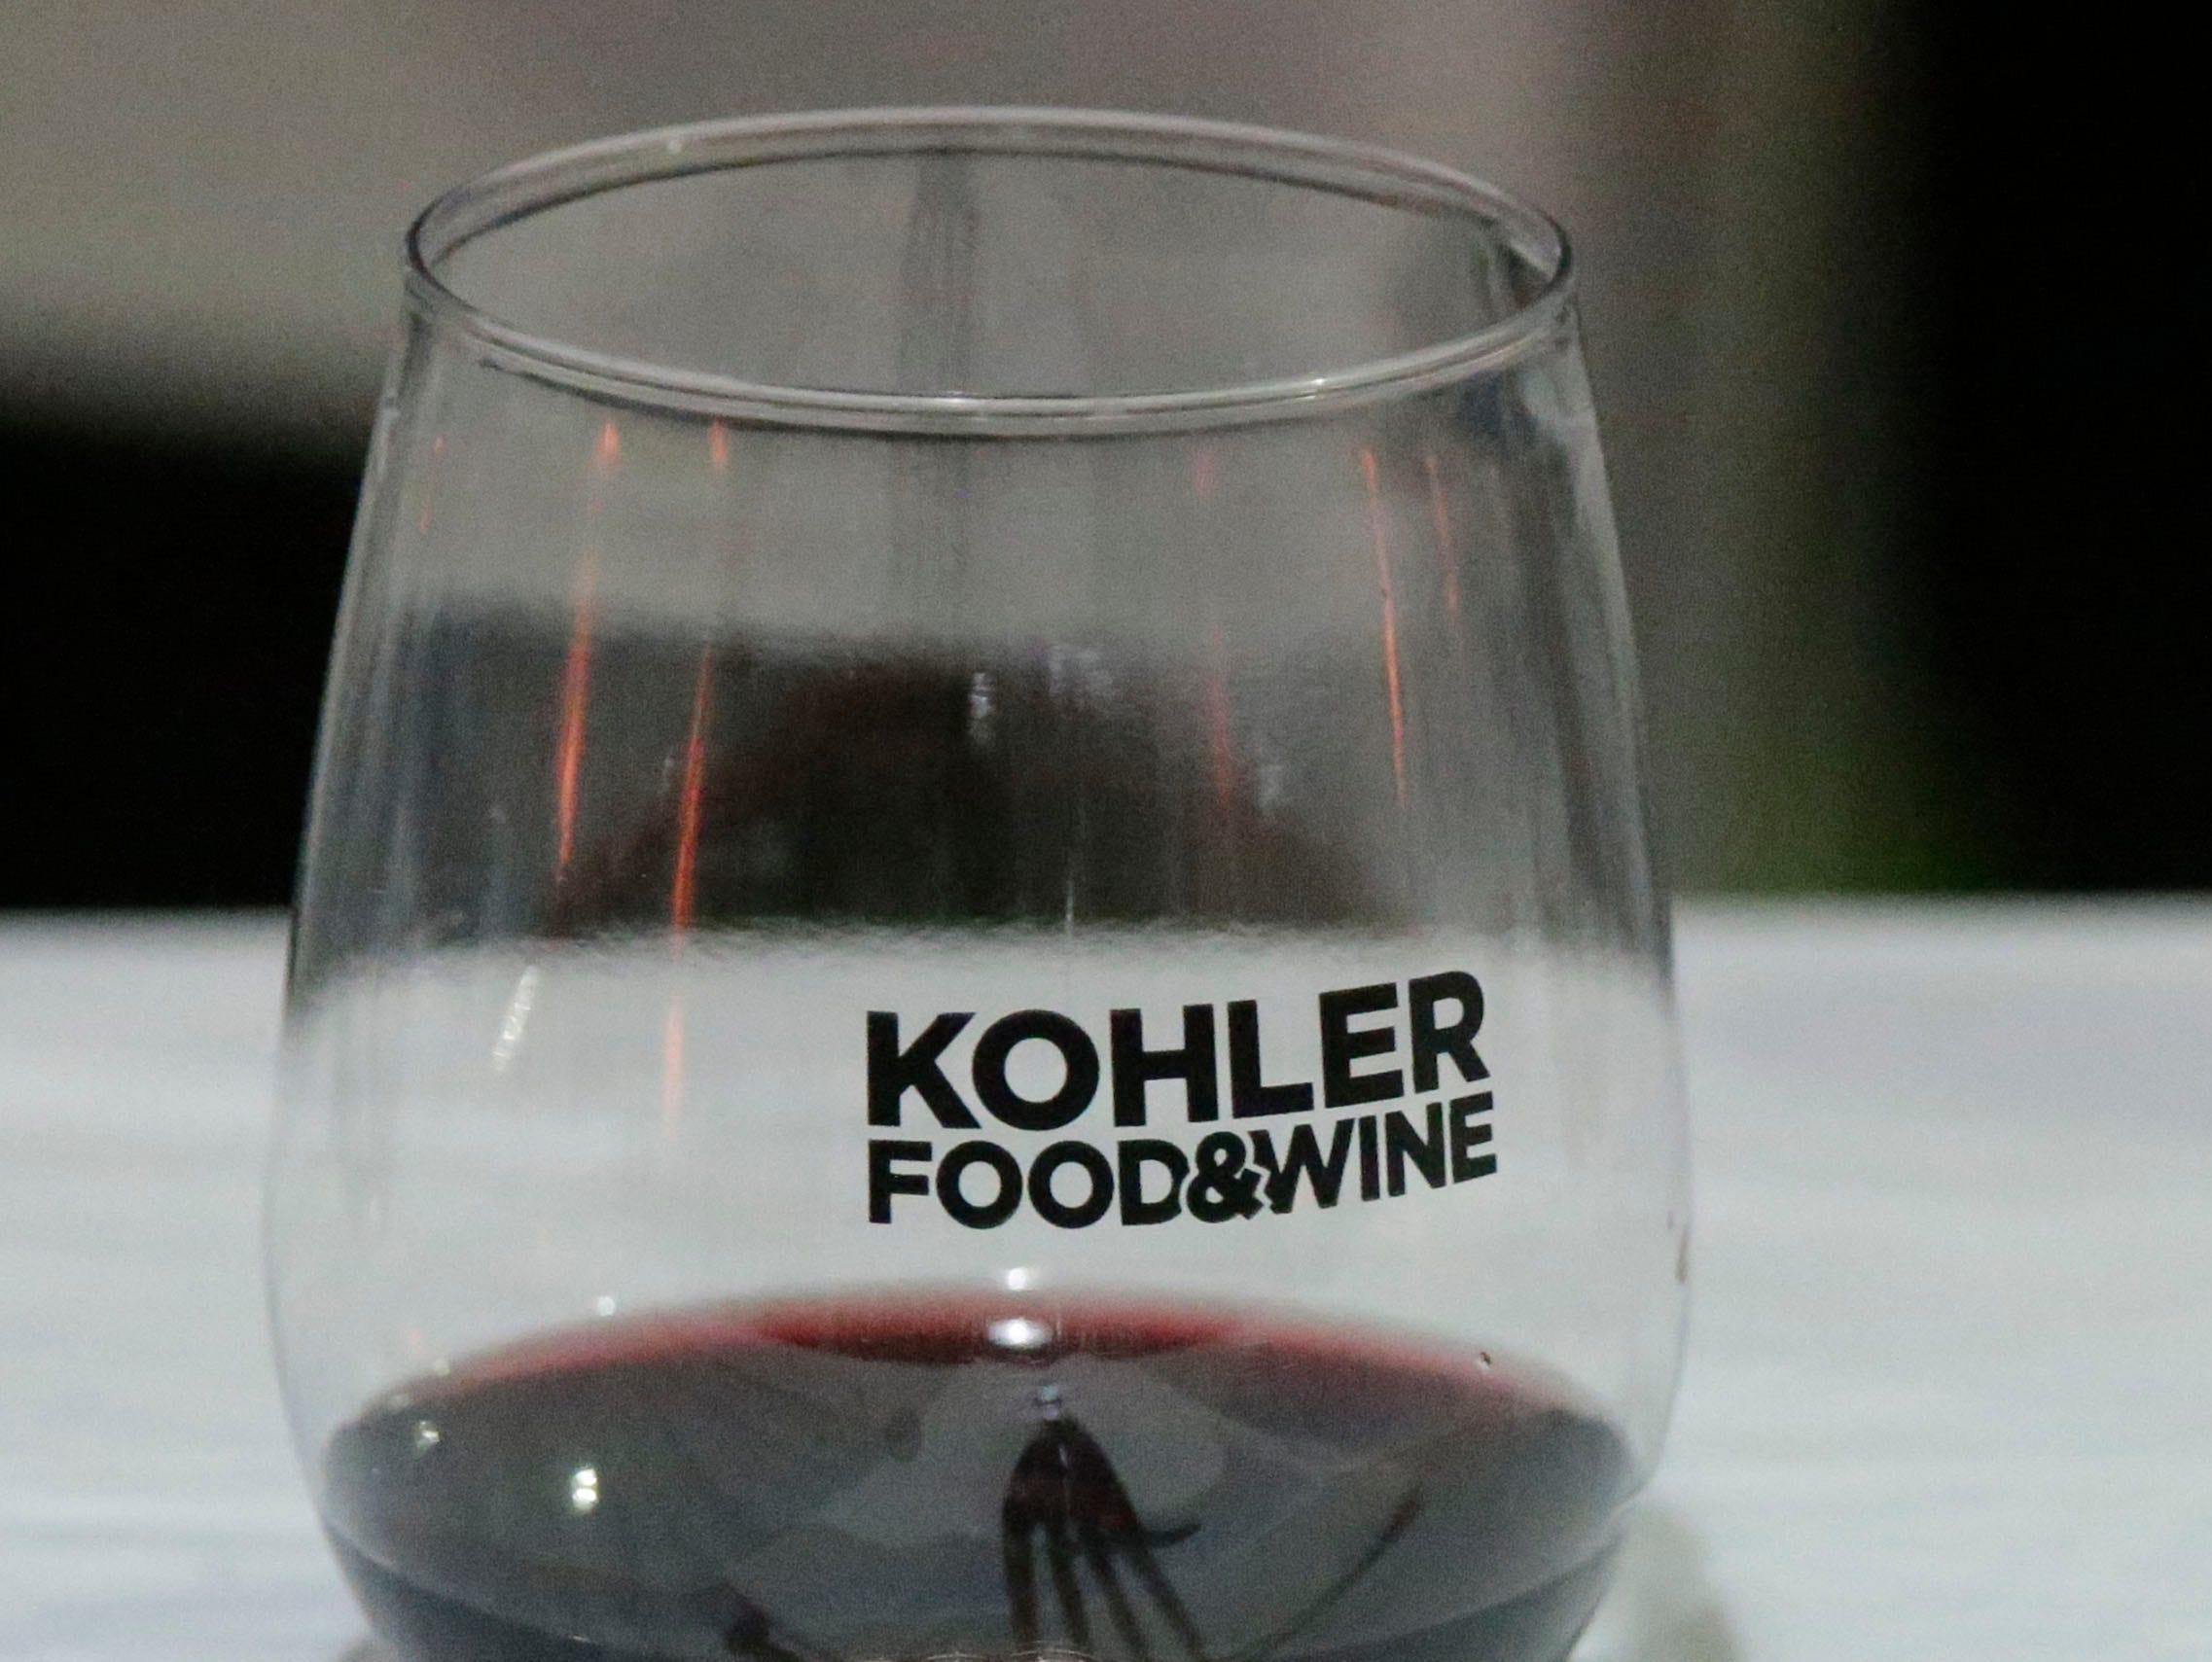 Wine in a glass and a fork ready to take on food sampling at Kohler Food and Wine, Saturday, October 20, 2018, in Kohler, Wis.